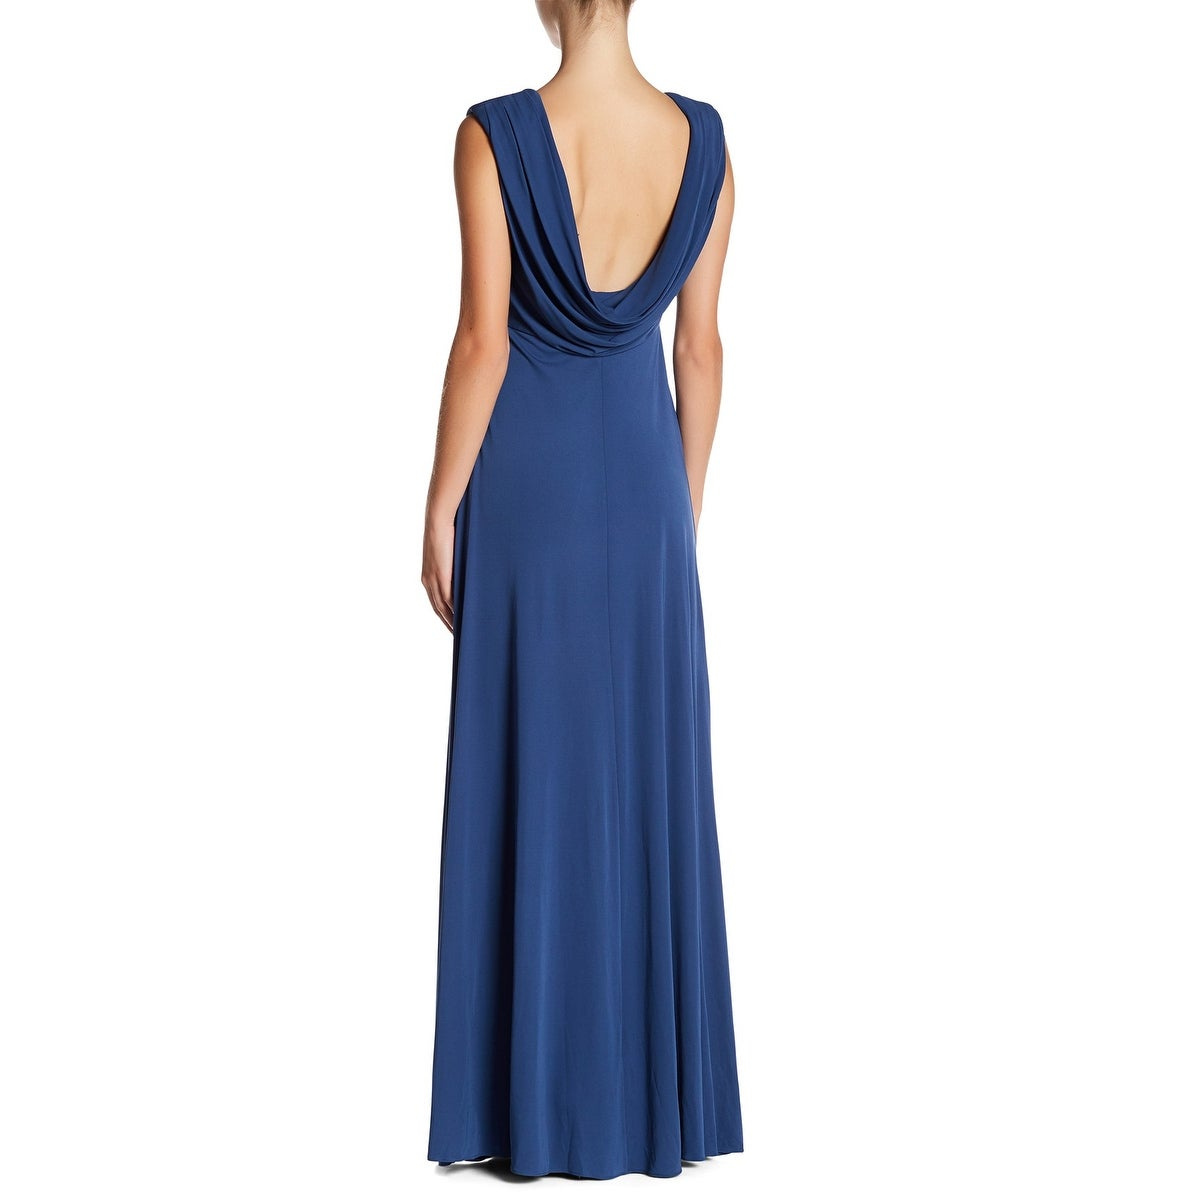 a1871486f369 Shop Vera Wang Sleeveless Draped Back Gown, Ink, 2 - Free Shipping Today -  Overstock - 26173001